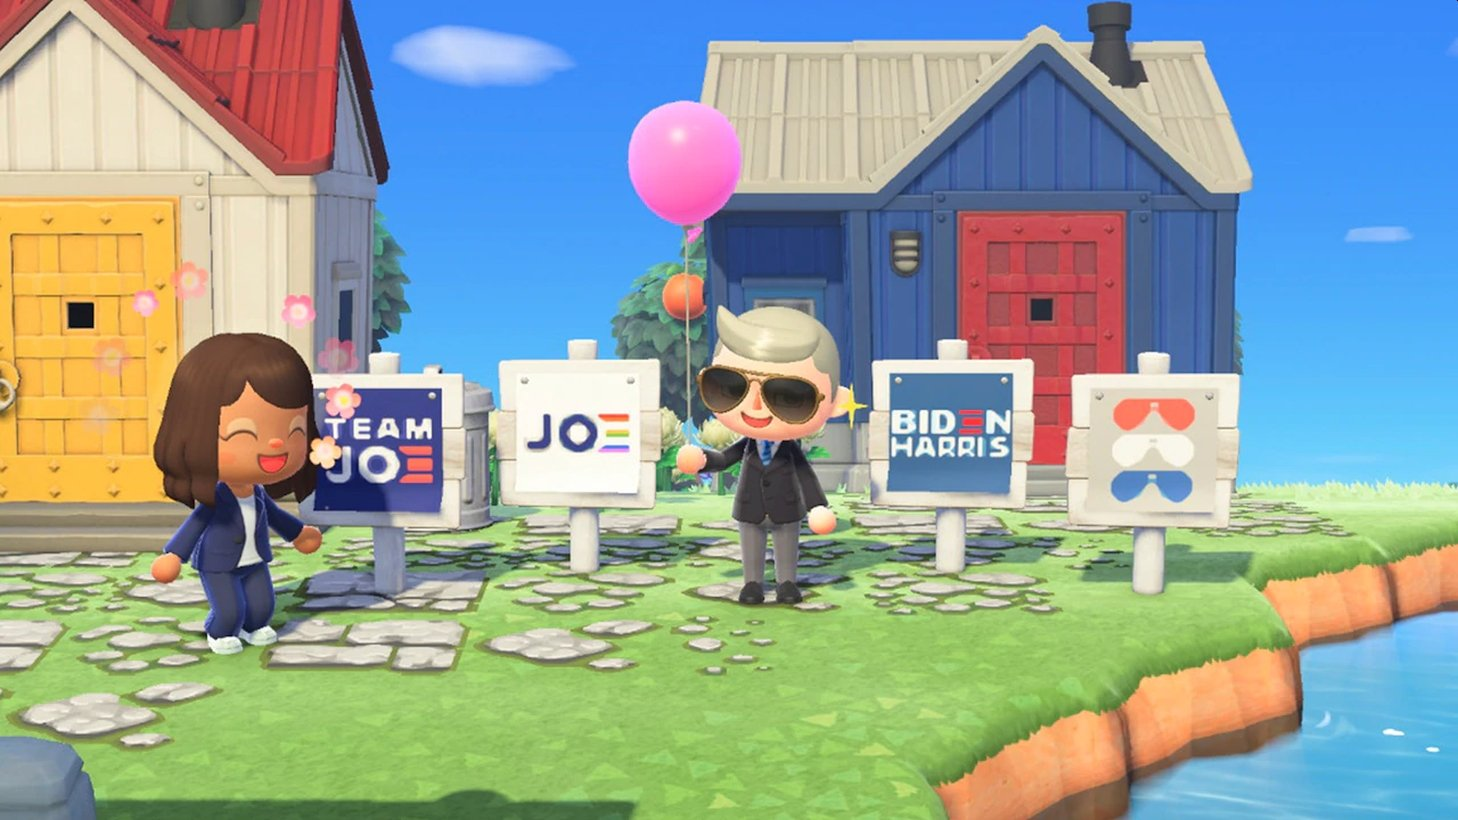 US Democrats Are Using Animal Crossing: New Horizons To Reach Young Voters